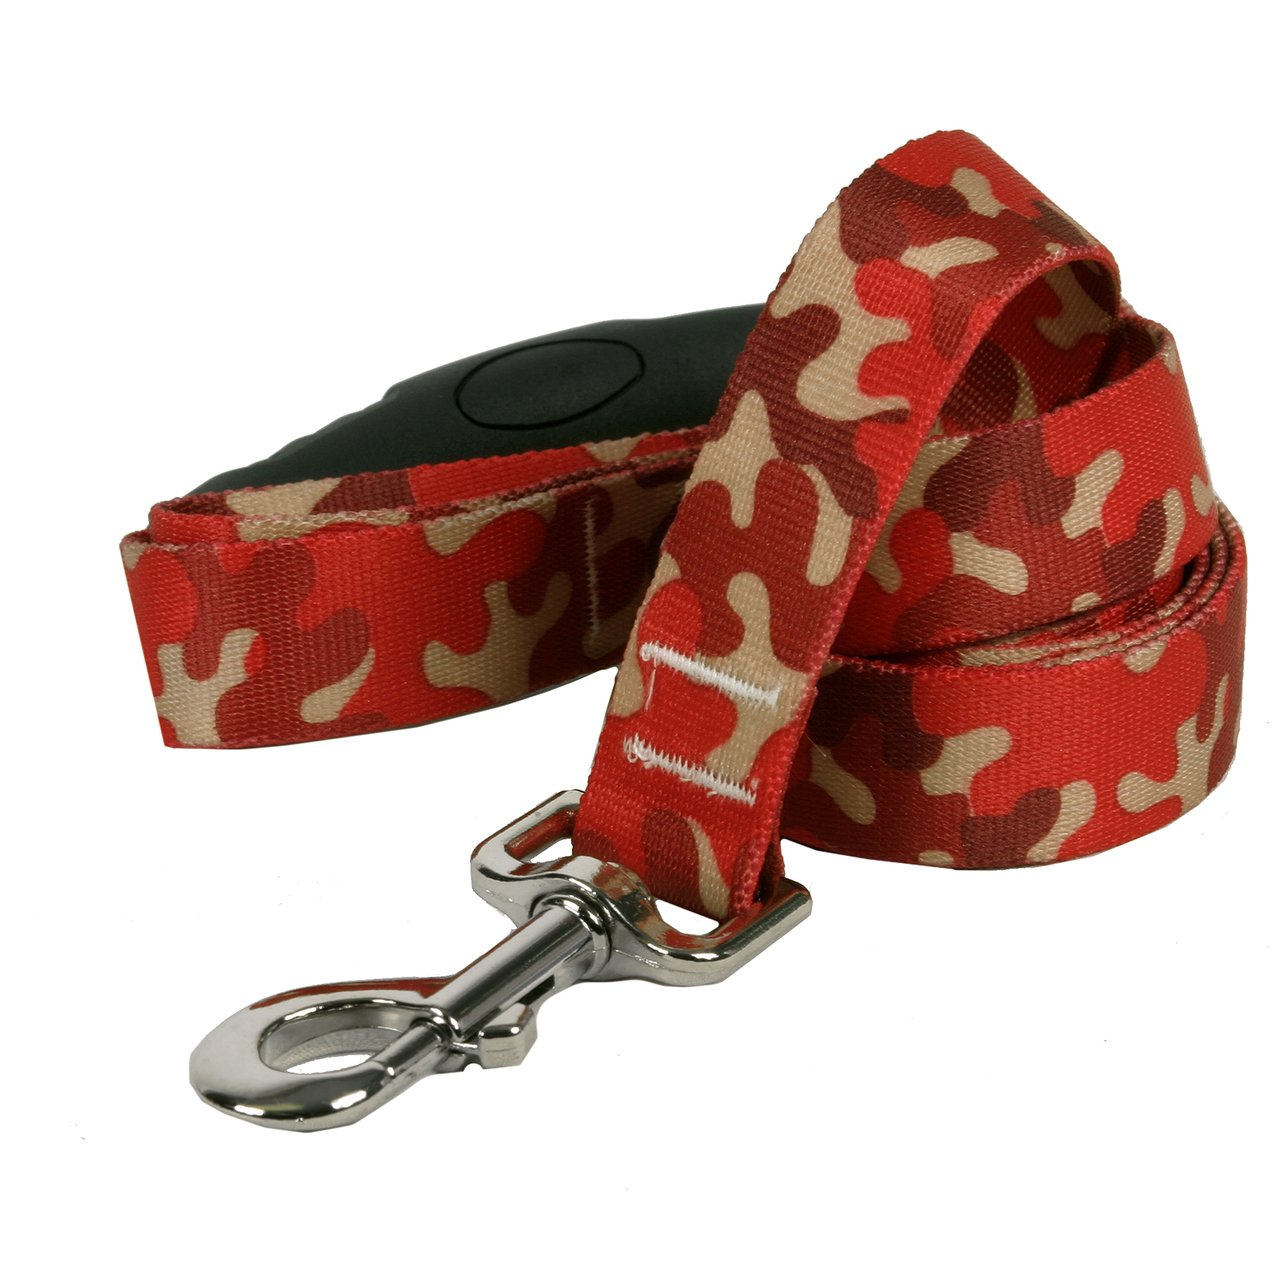 Yellow Dog Design Camo Red Ez-Grip Dog Leash with Comfort Handle 1'' Wide and 5' (60'') Long, Large